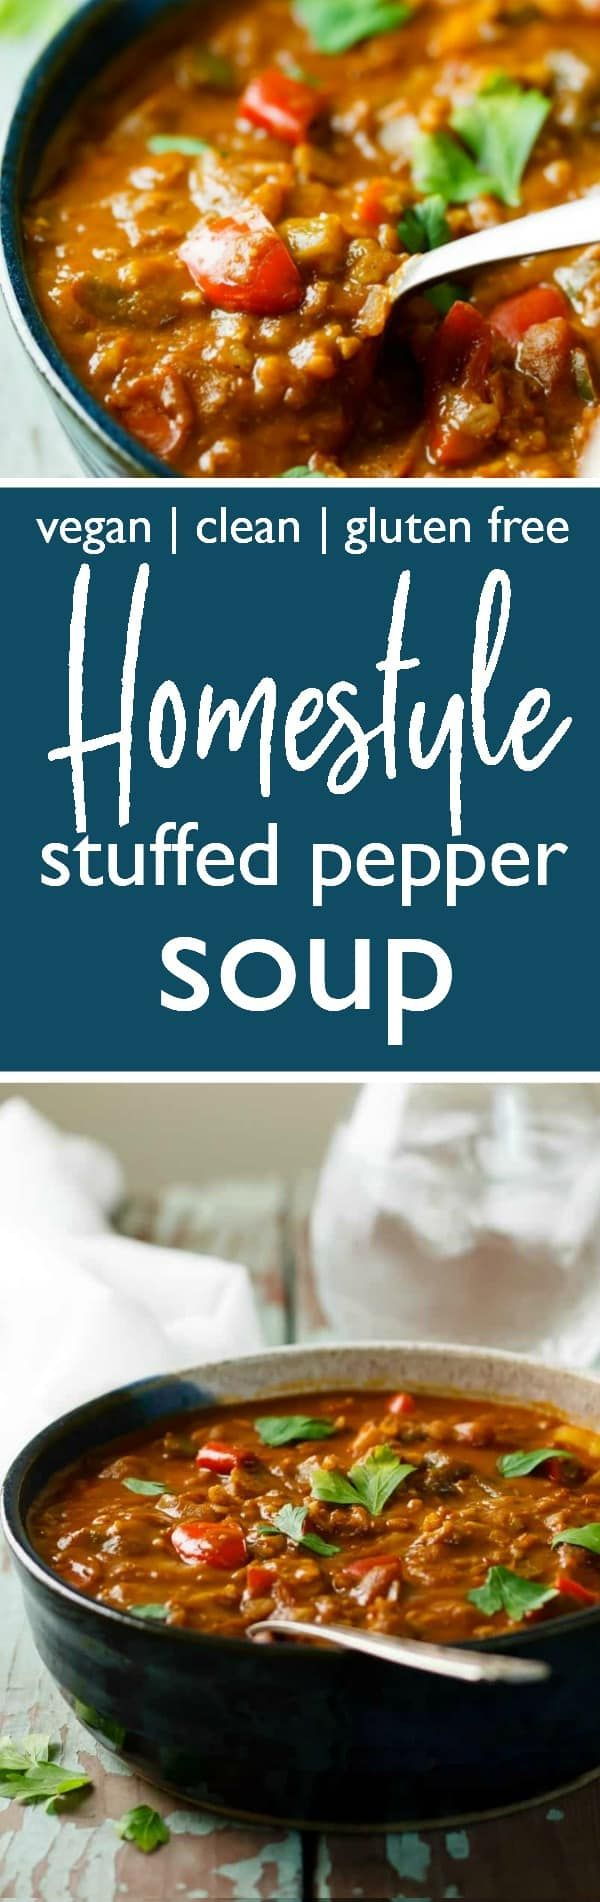 Homestyle Stuffed Pepper Soup – Vegan, Clean and Gluten ...